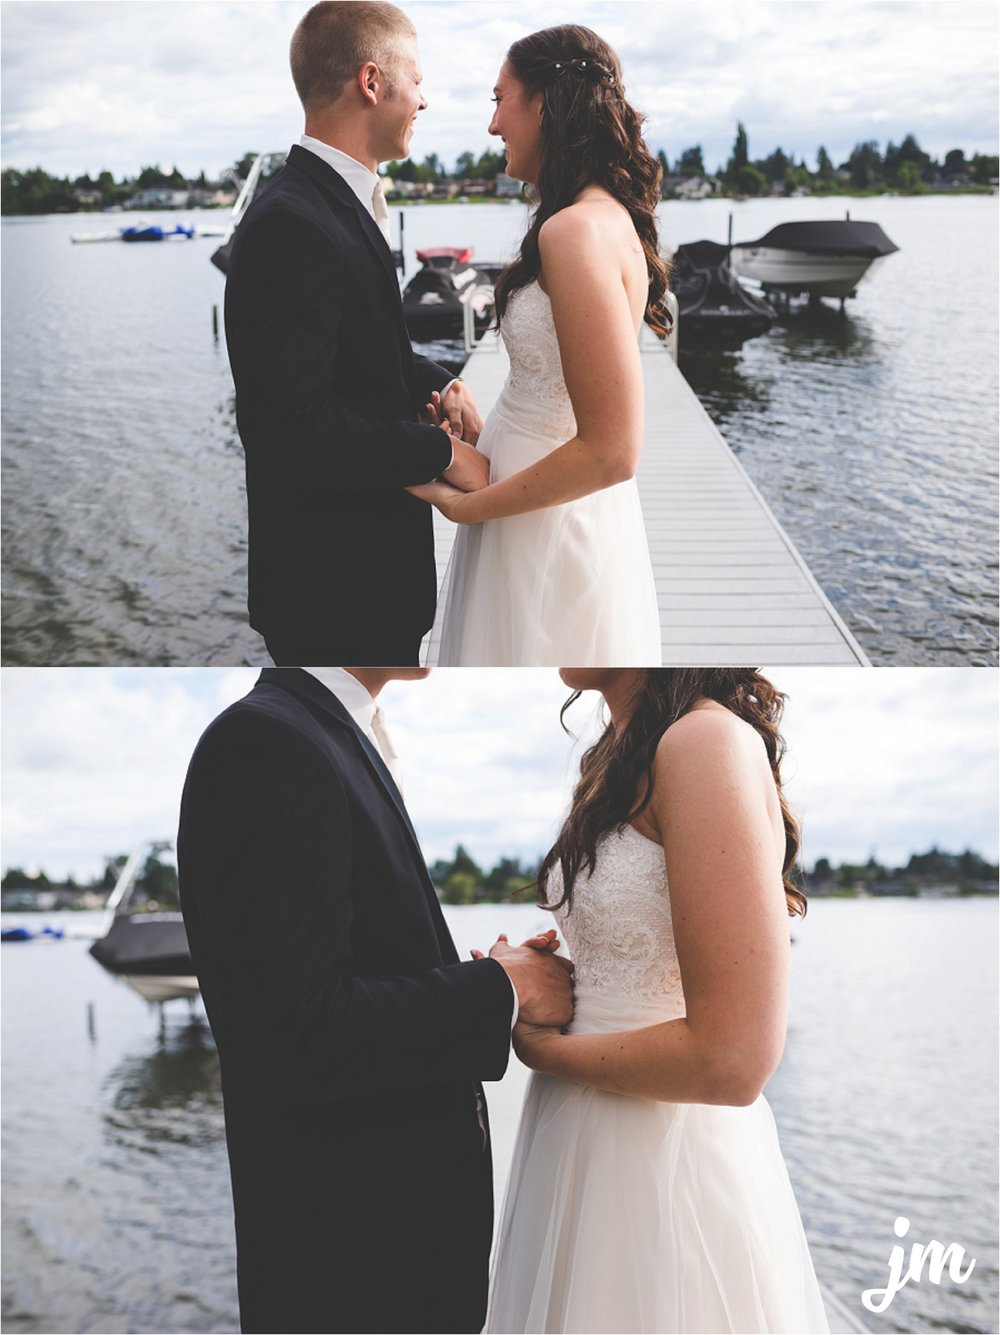 jannicka-mayte-intimate-backyard-lake-wedding-kent-wa-pacific-northwest-wedding-photographer_0023.jpg